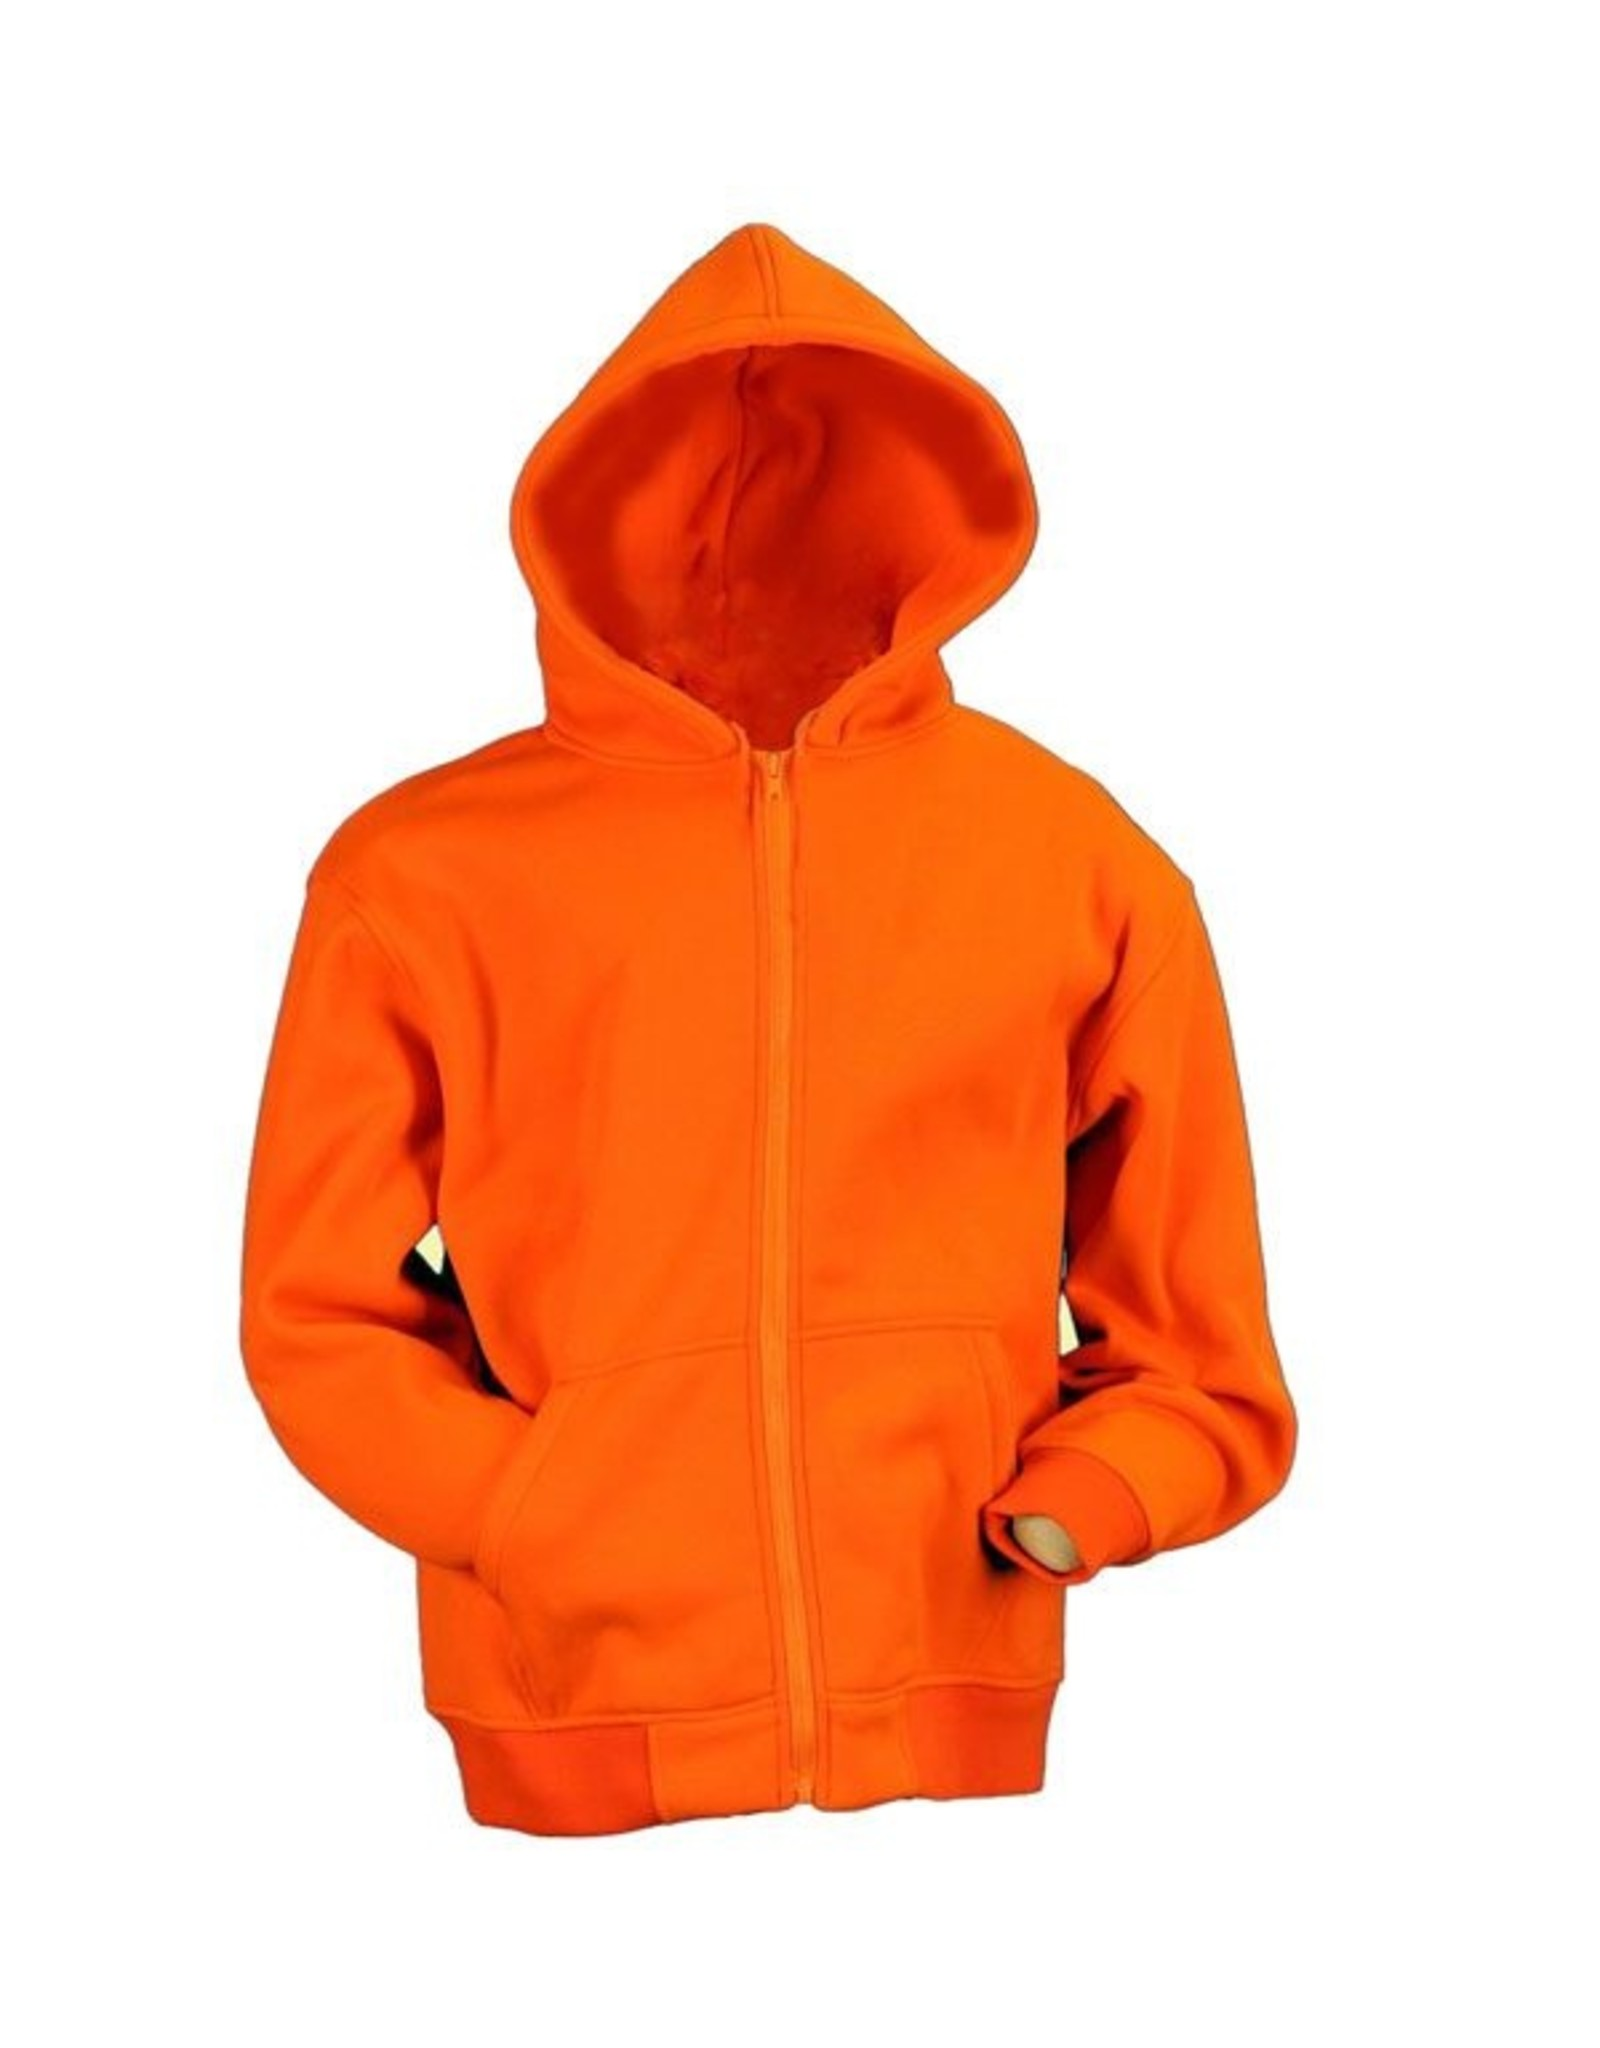 WORLD FAMOUS SALES BLAZE ORANGE ZIPPERED HOODIE SWEATSHIRT